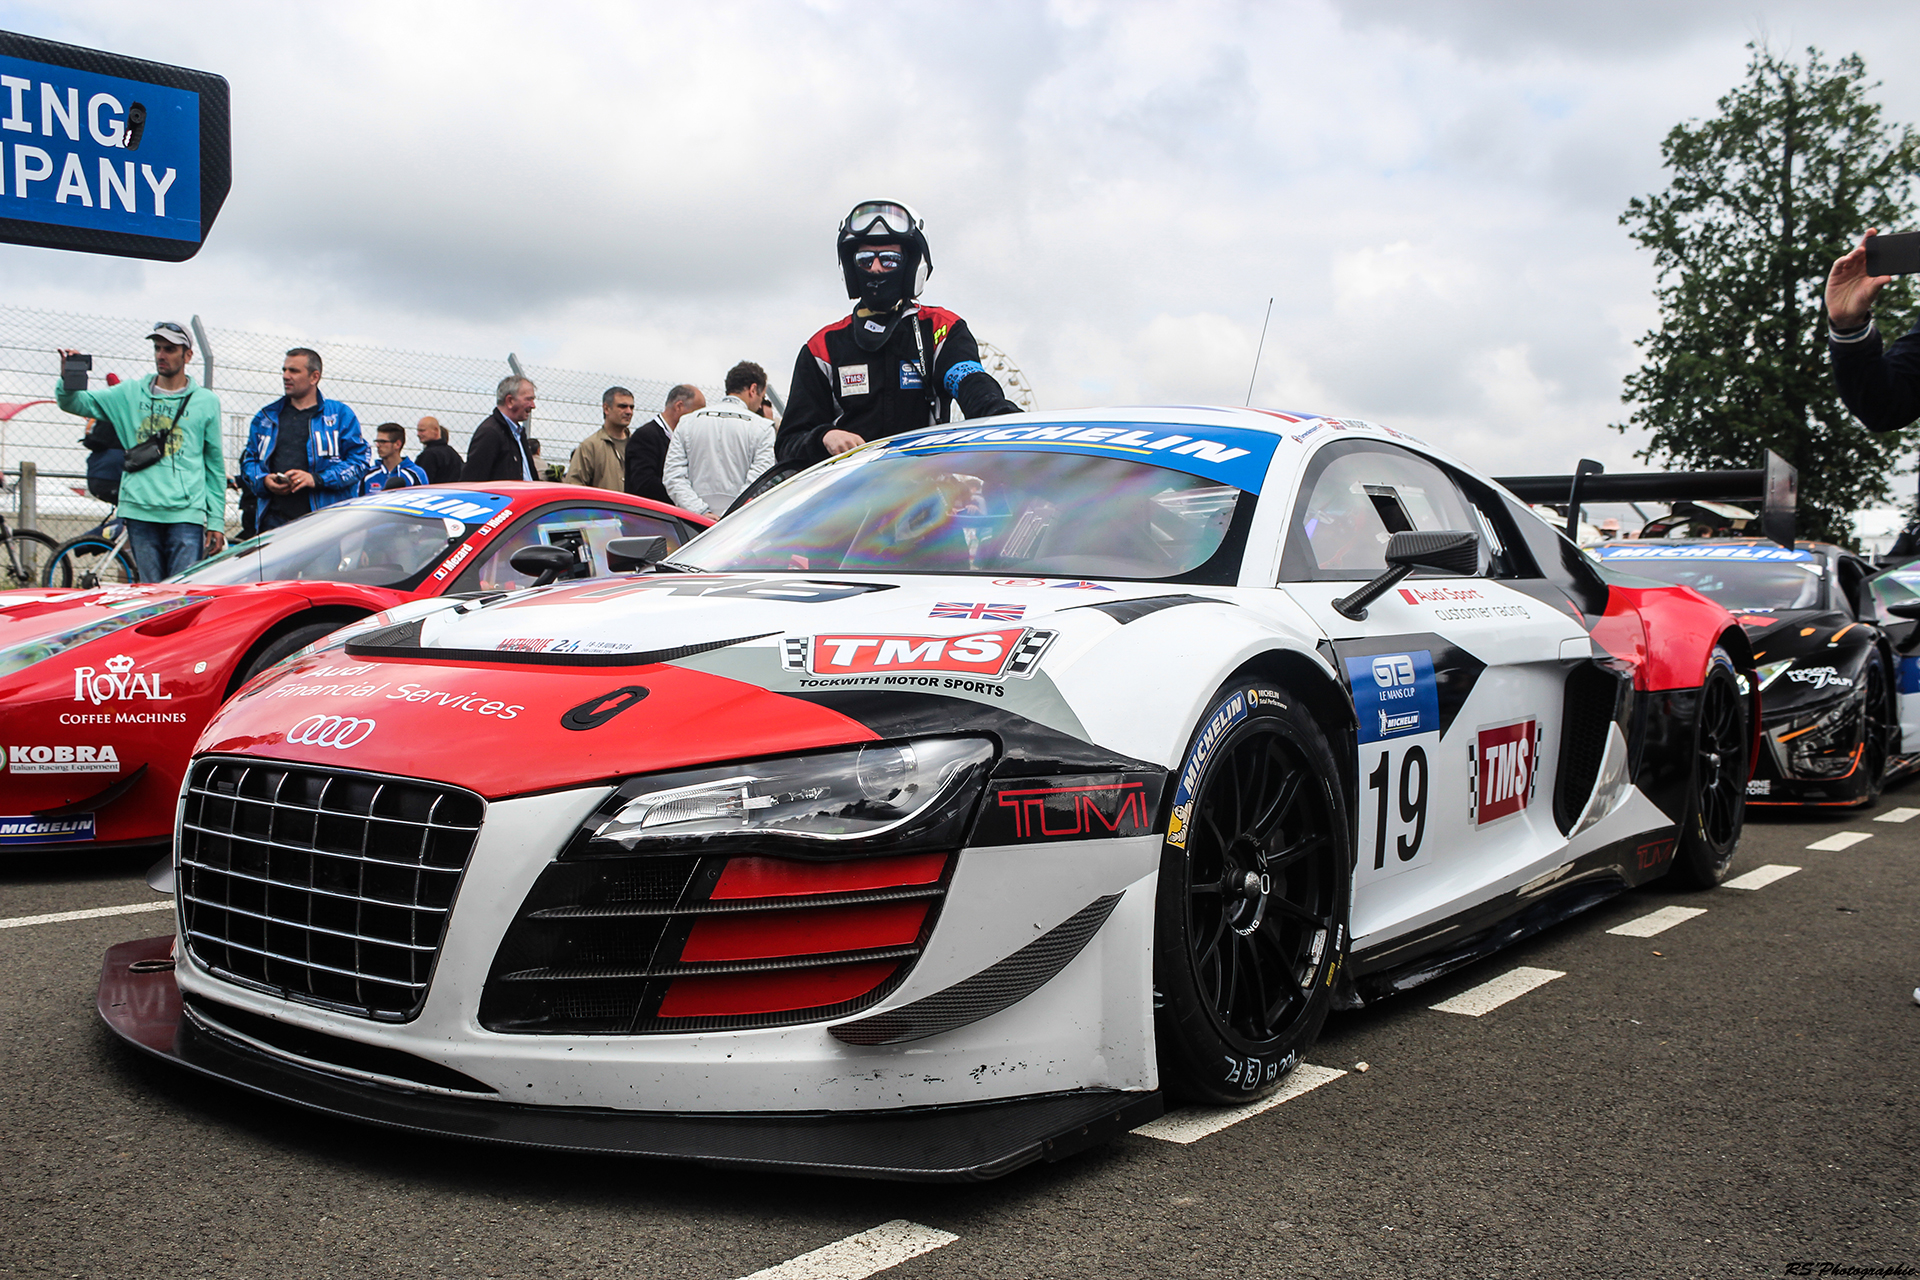 Road to Le Mans 2016 - R8 LMS GT3 - Arnaud Demasier RS Photographie